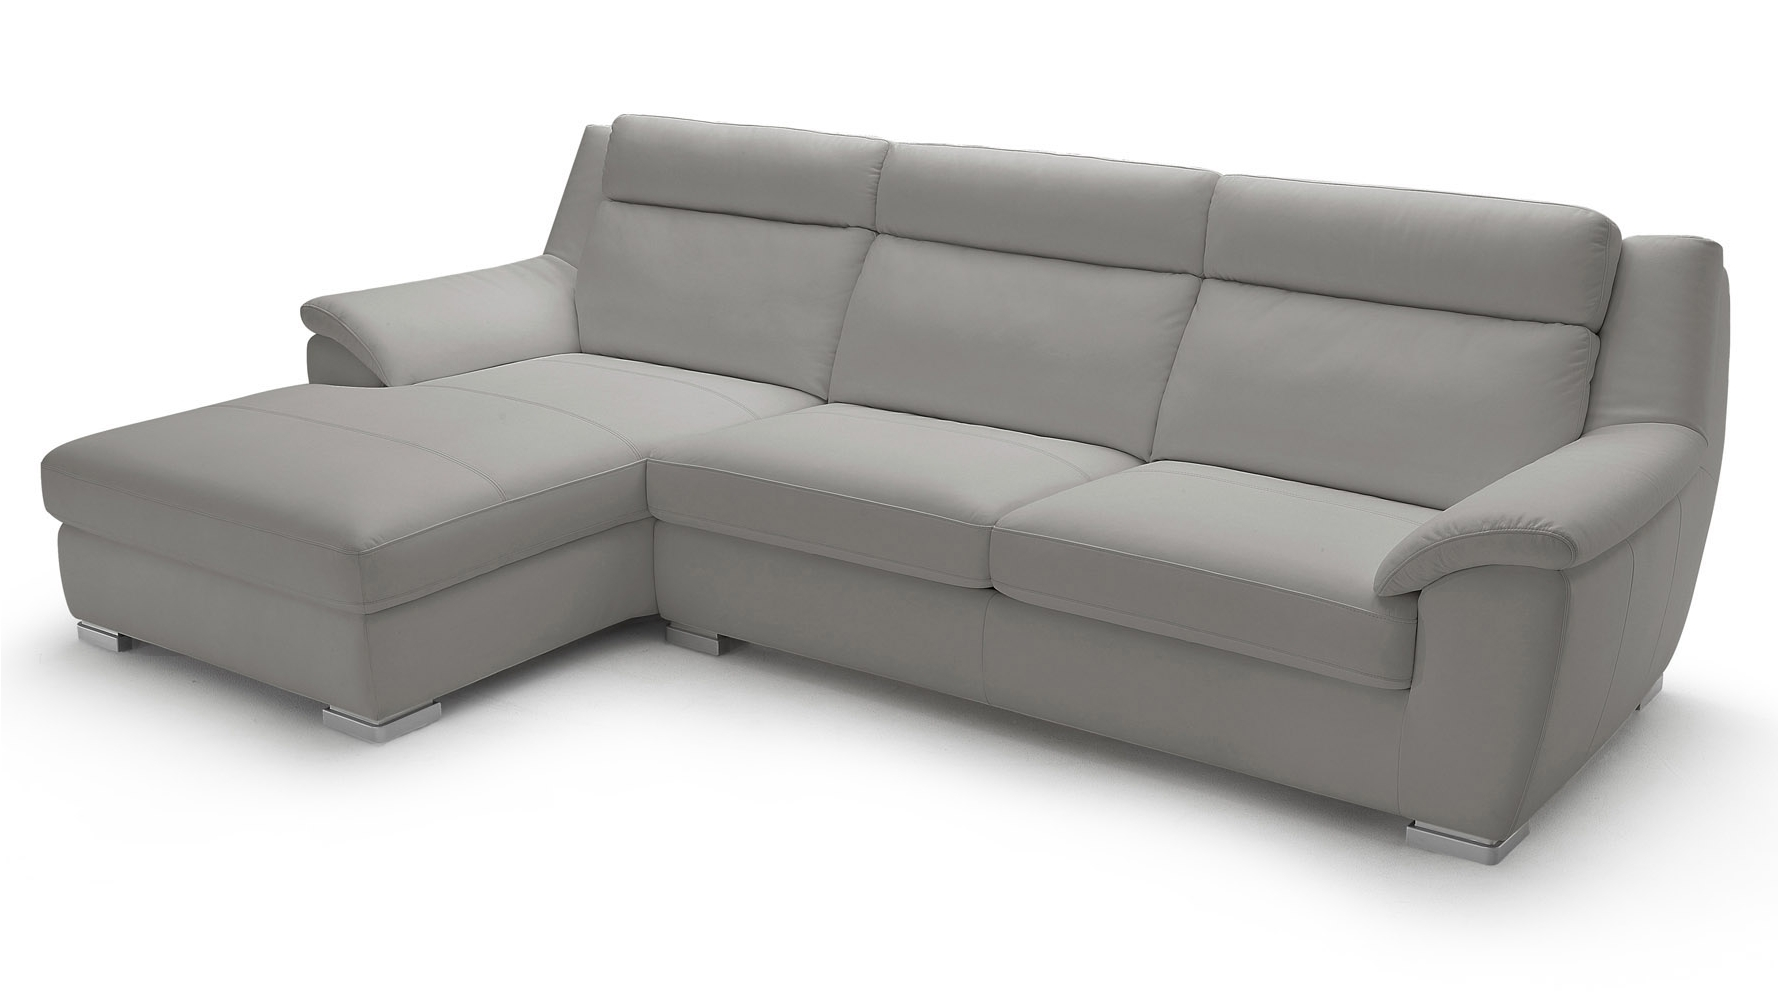 Newest Sleeper Chaise Sofas Pertaining To Manor Light Grey Top Grain Leather Sofa Sleeper Sectional With (View 10 of 15)